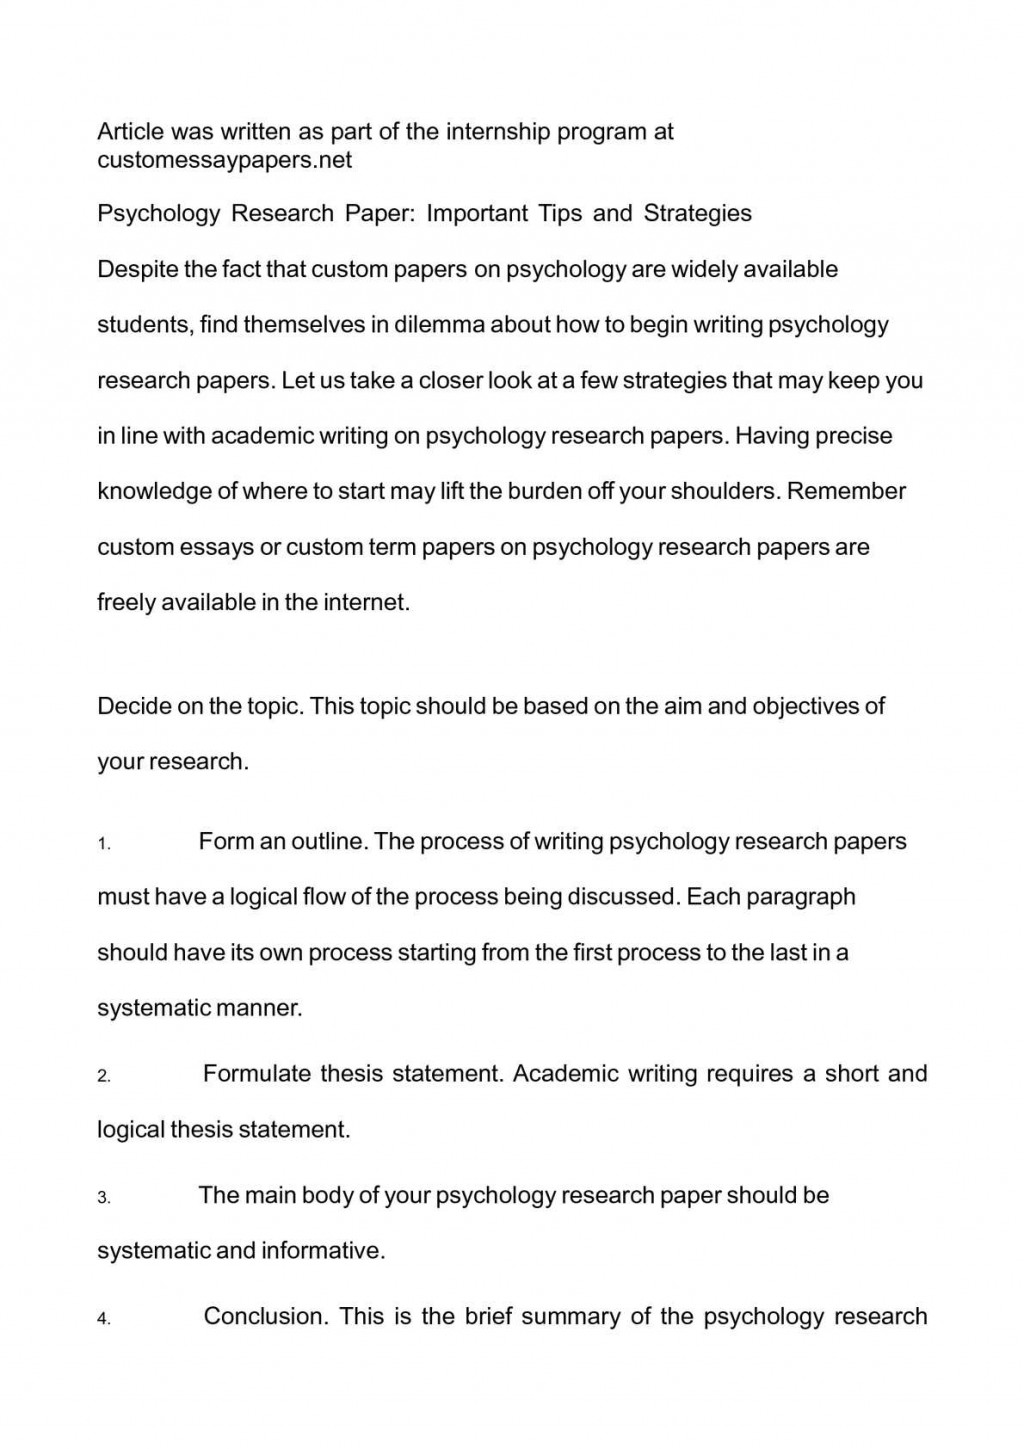 013 P1 Research Paper Sensational Psychology Outline Apa Abstract Large